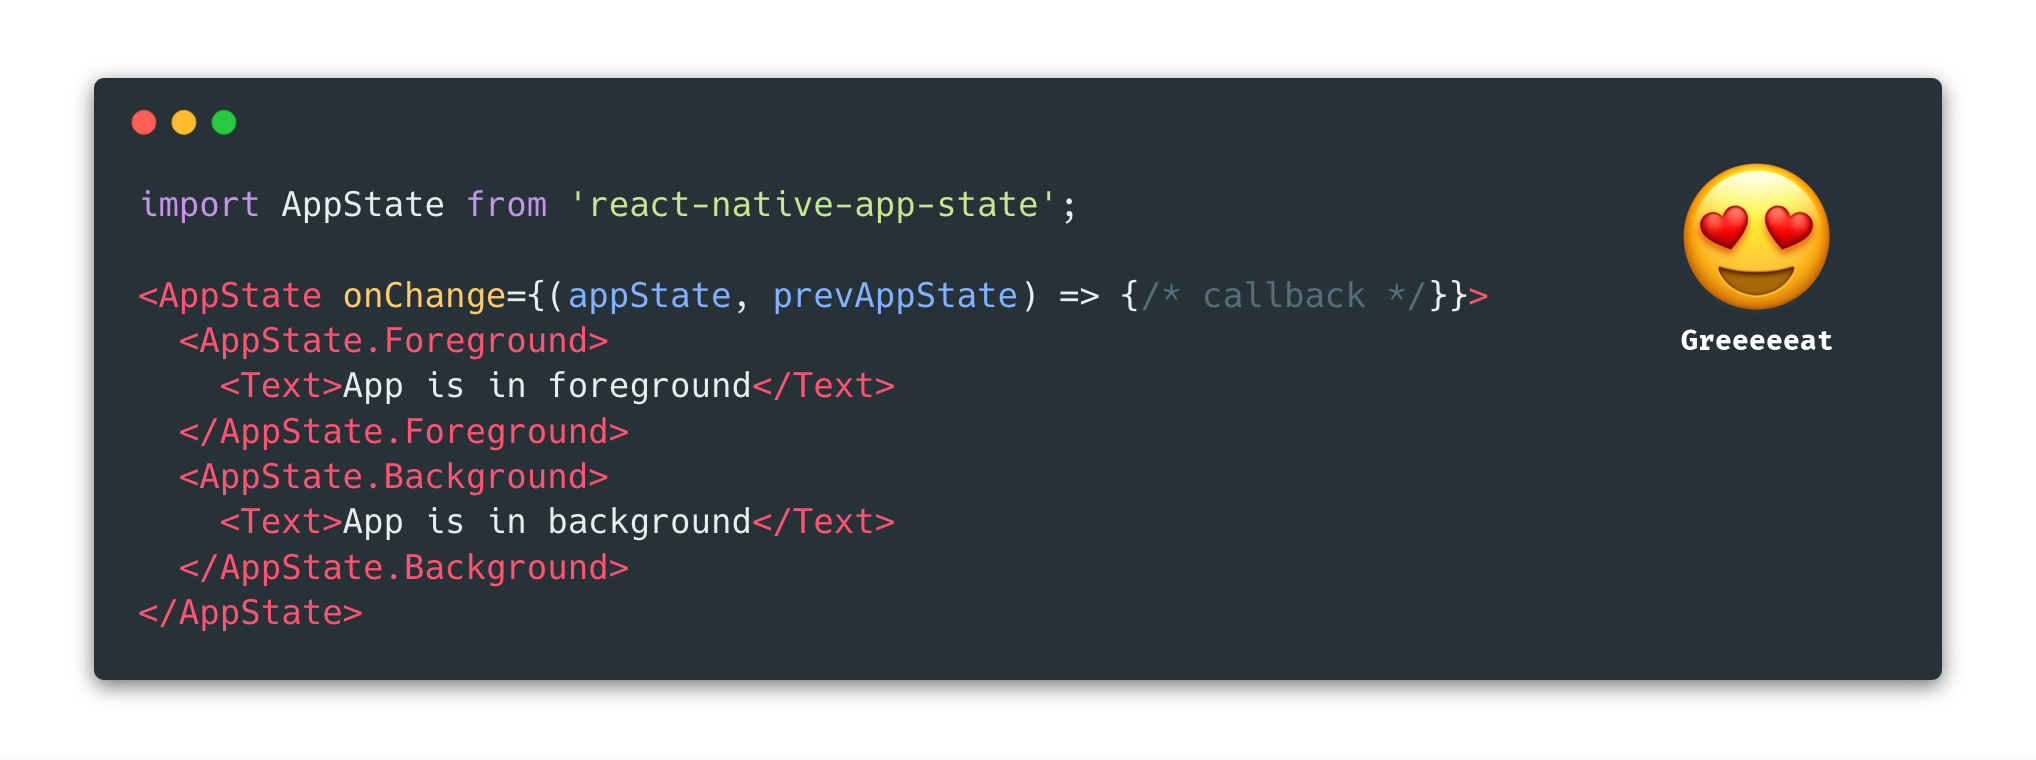 react-native-app-state